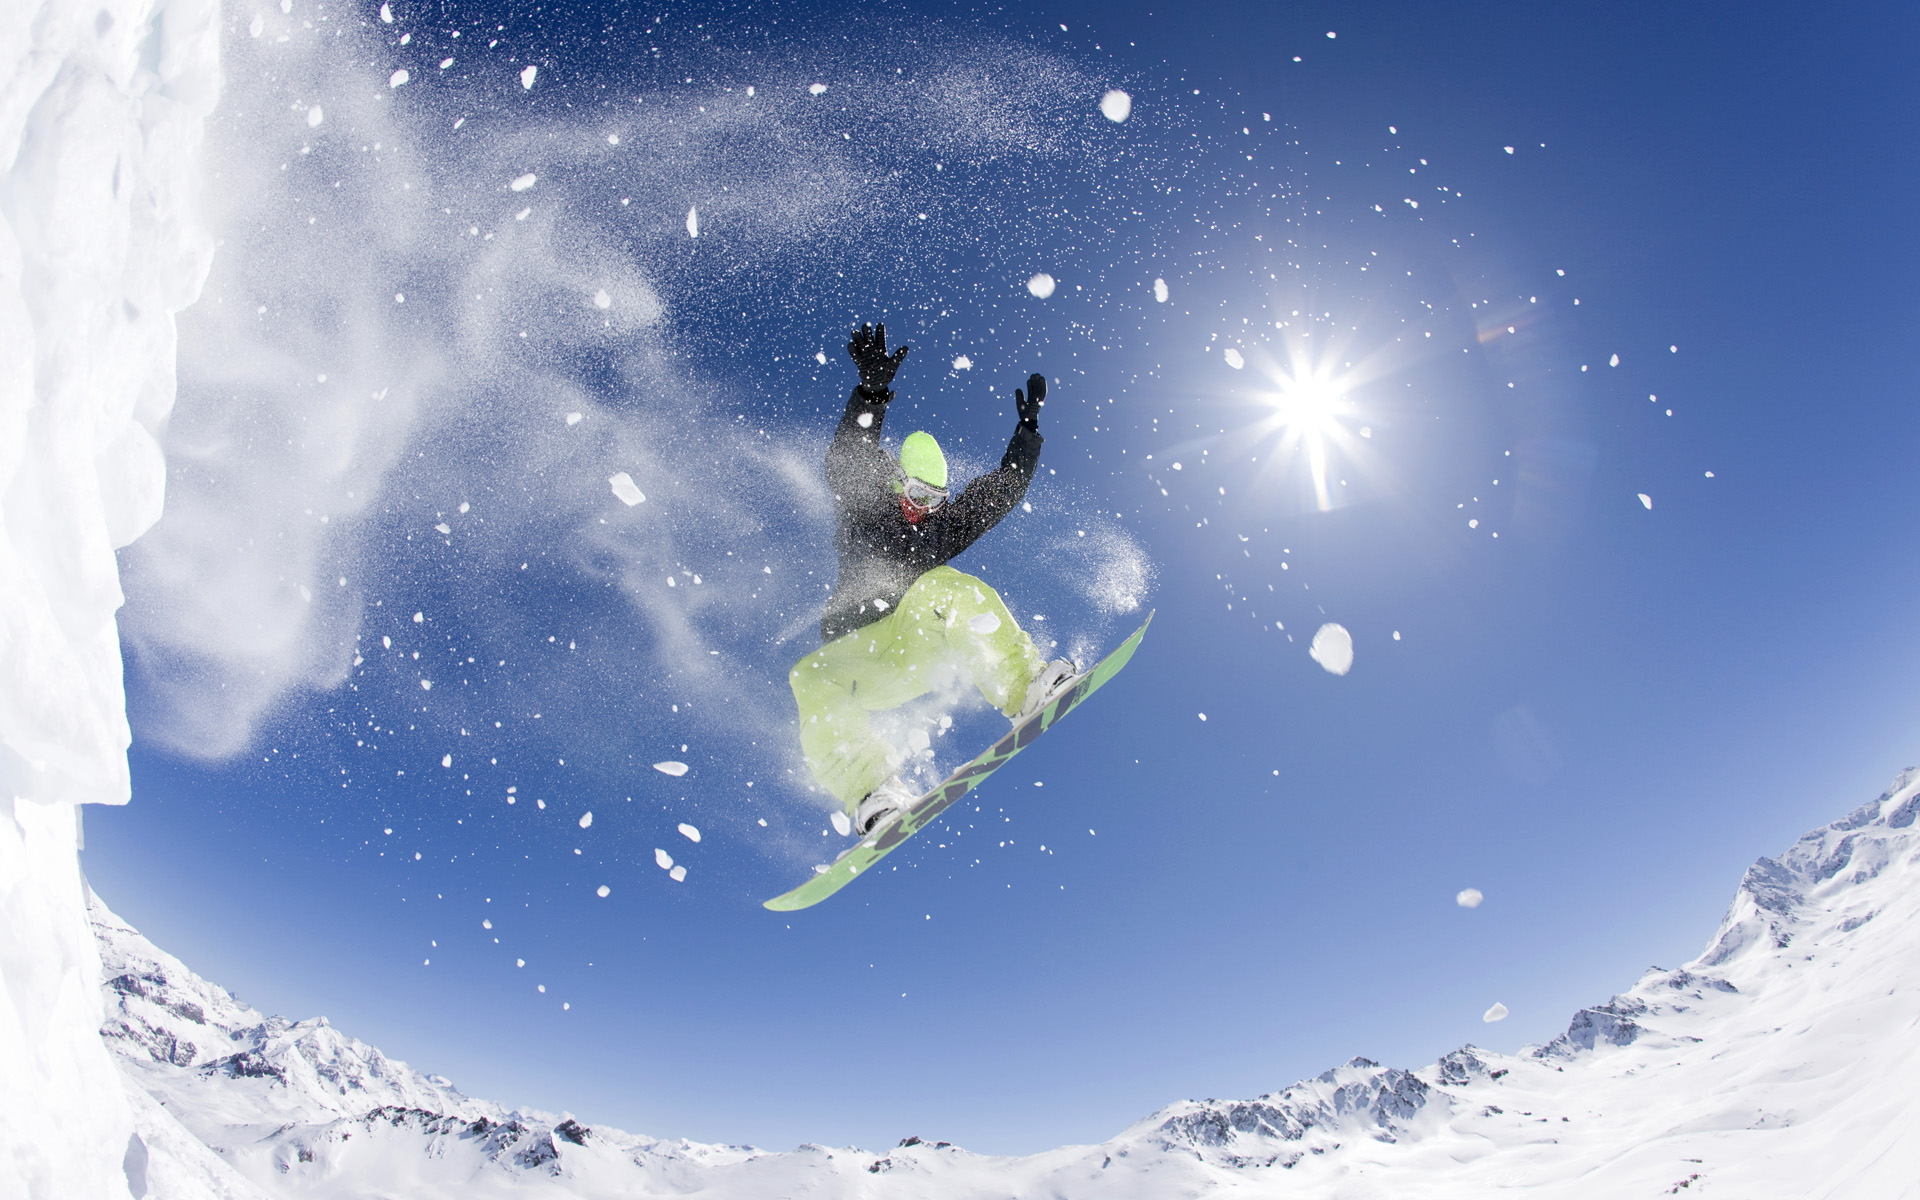 fascinating-snowboarding-wallpaper-amazing-snowboarding-wallpaper-wallpapers-hd-for-facebook-pc-mobile-free-download-desktop-iphone-android-with-quotes.jpg